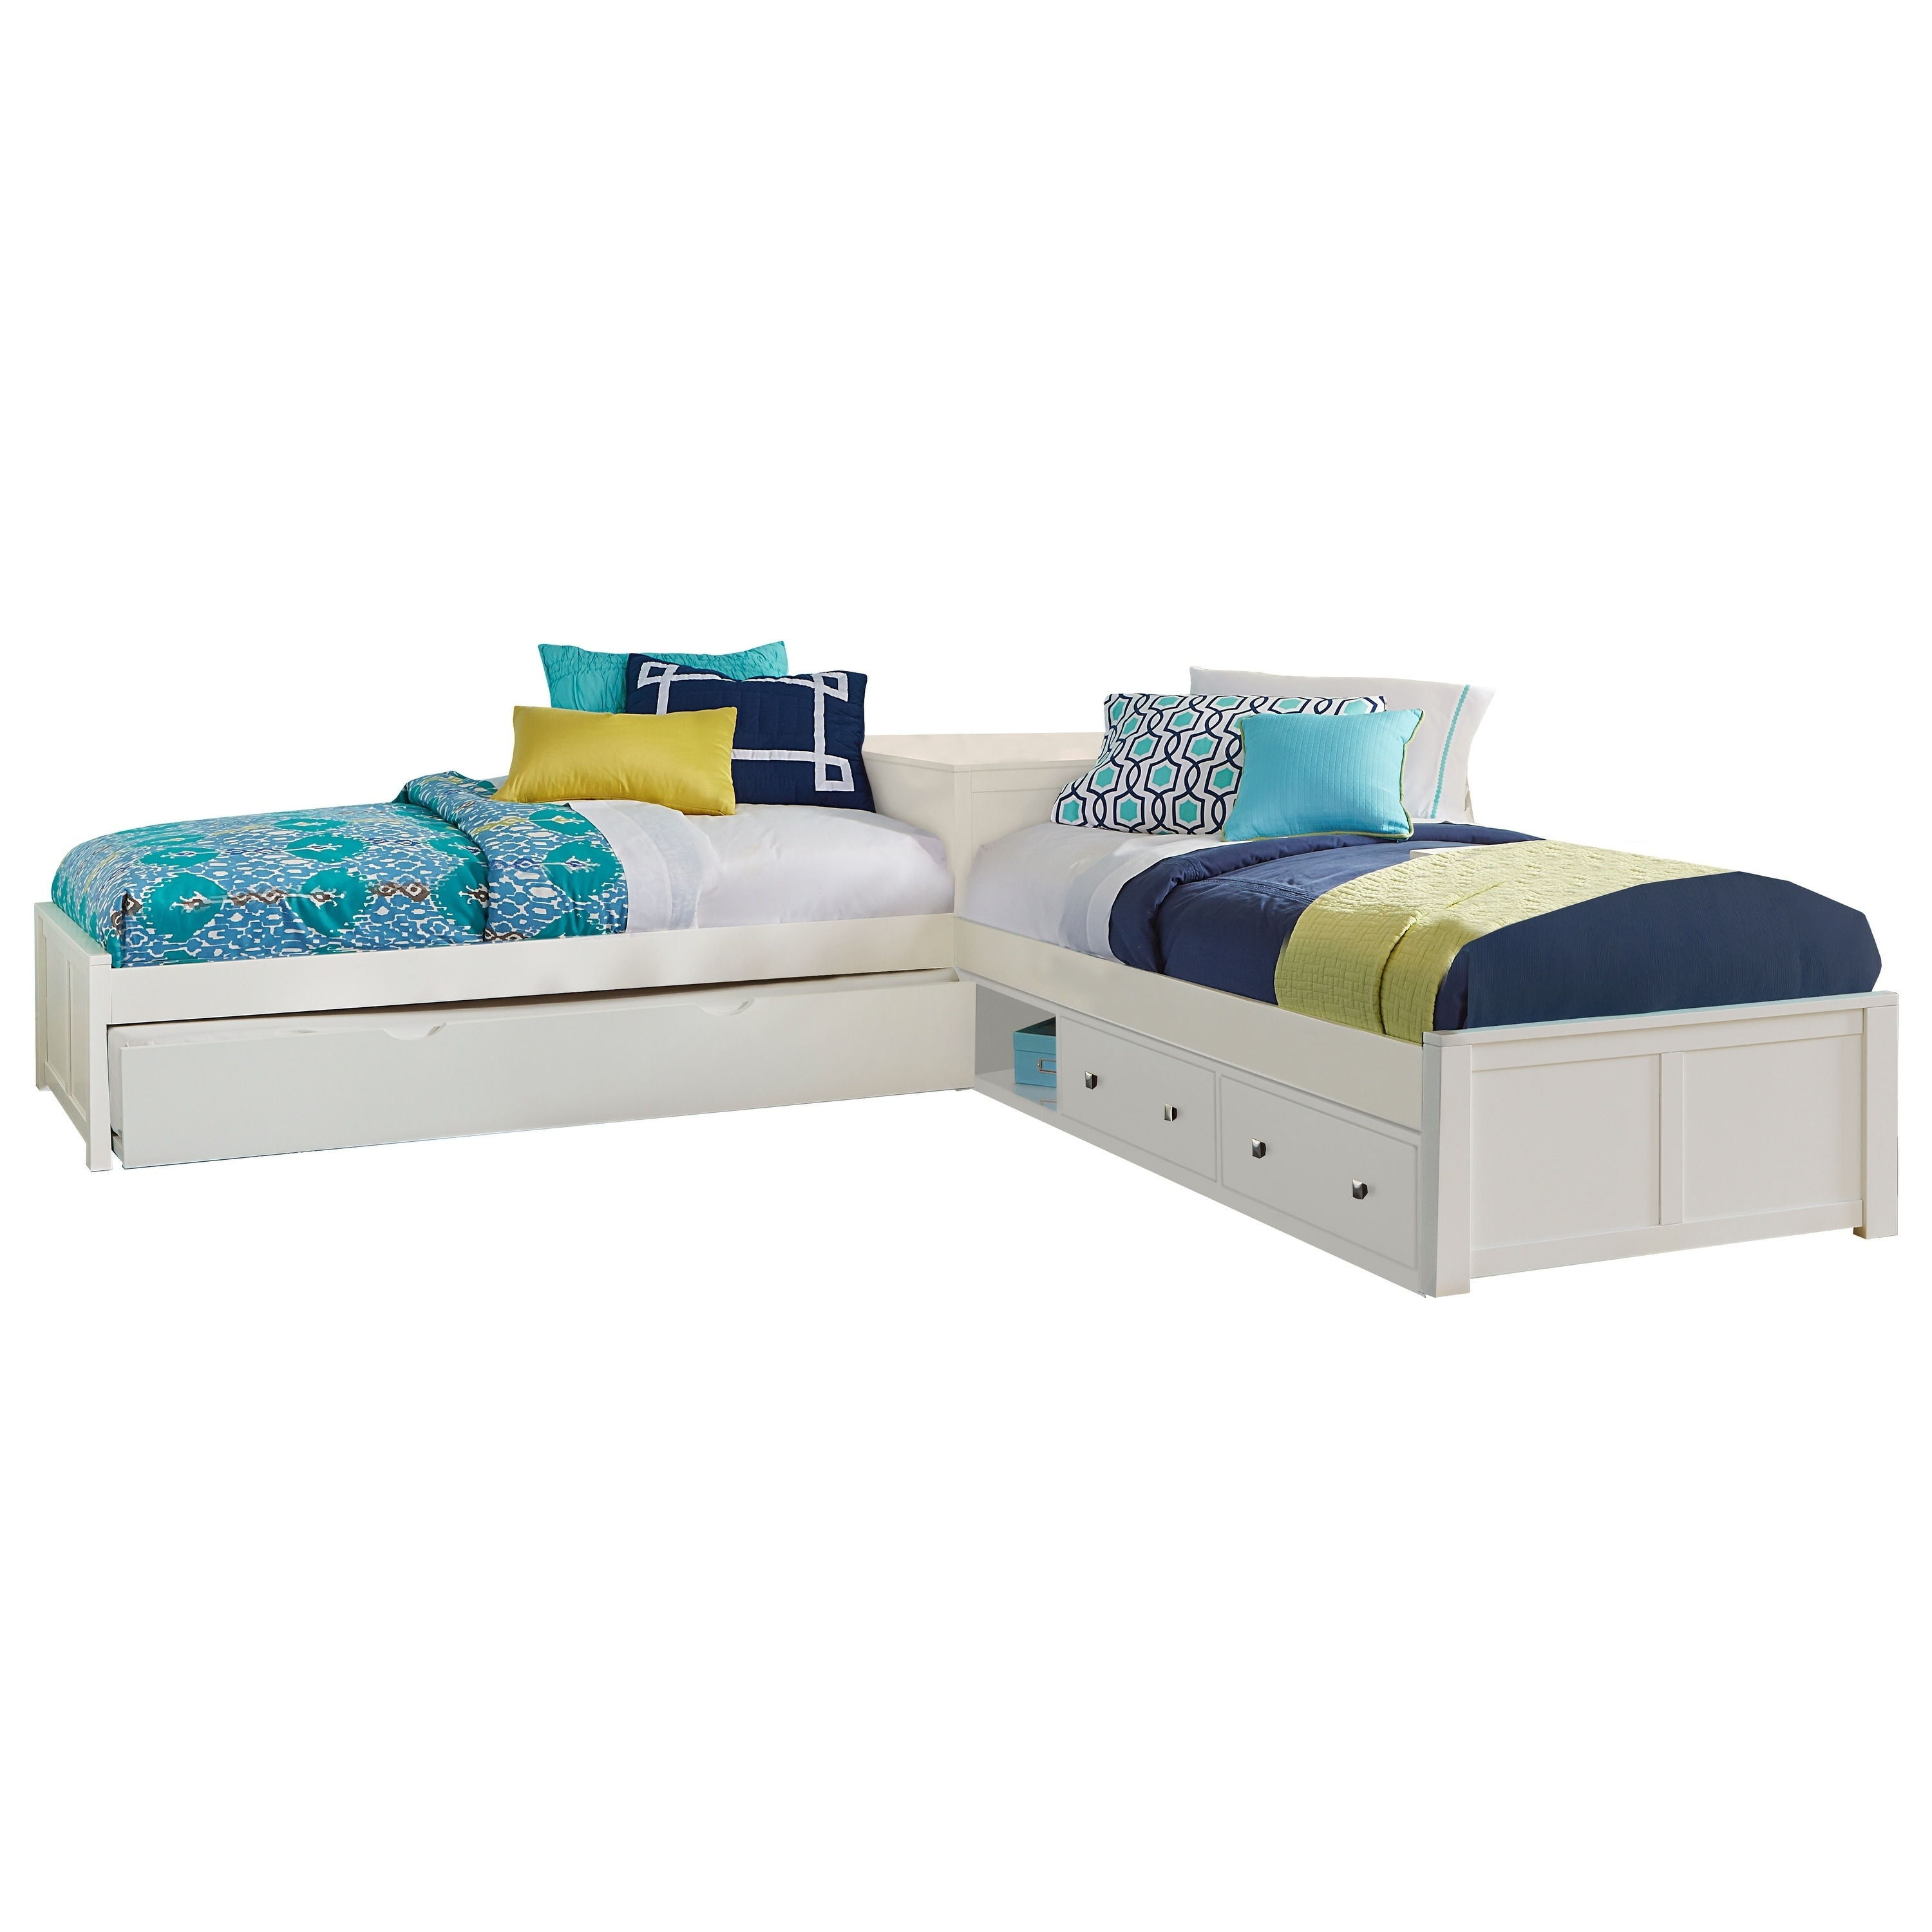 Hillsdale Pulse White L Shape Bed With Storage And Trundle Overstock 18692478